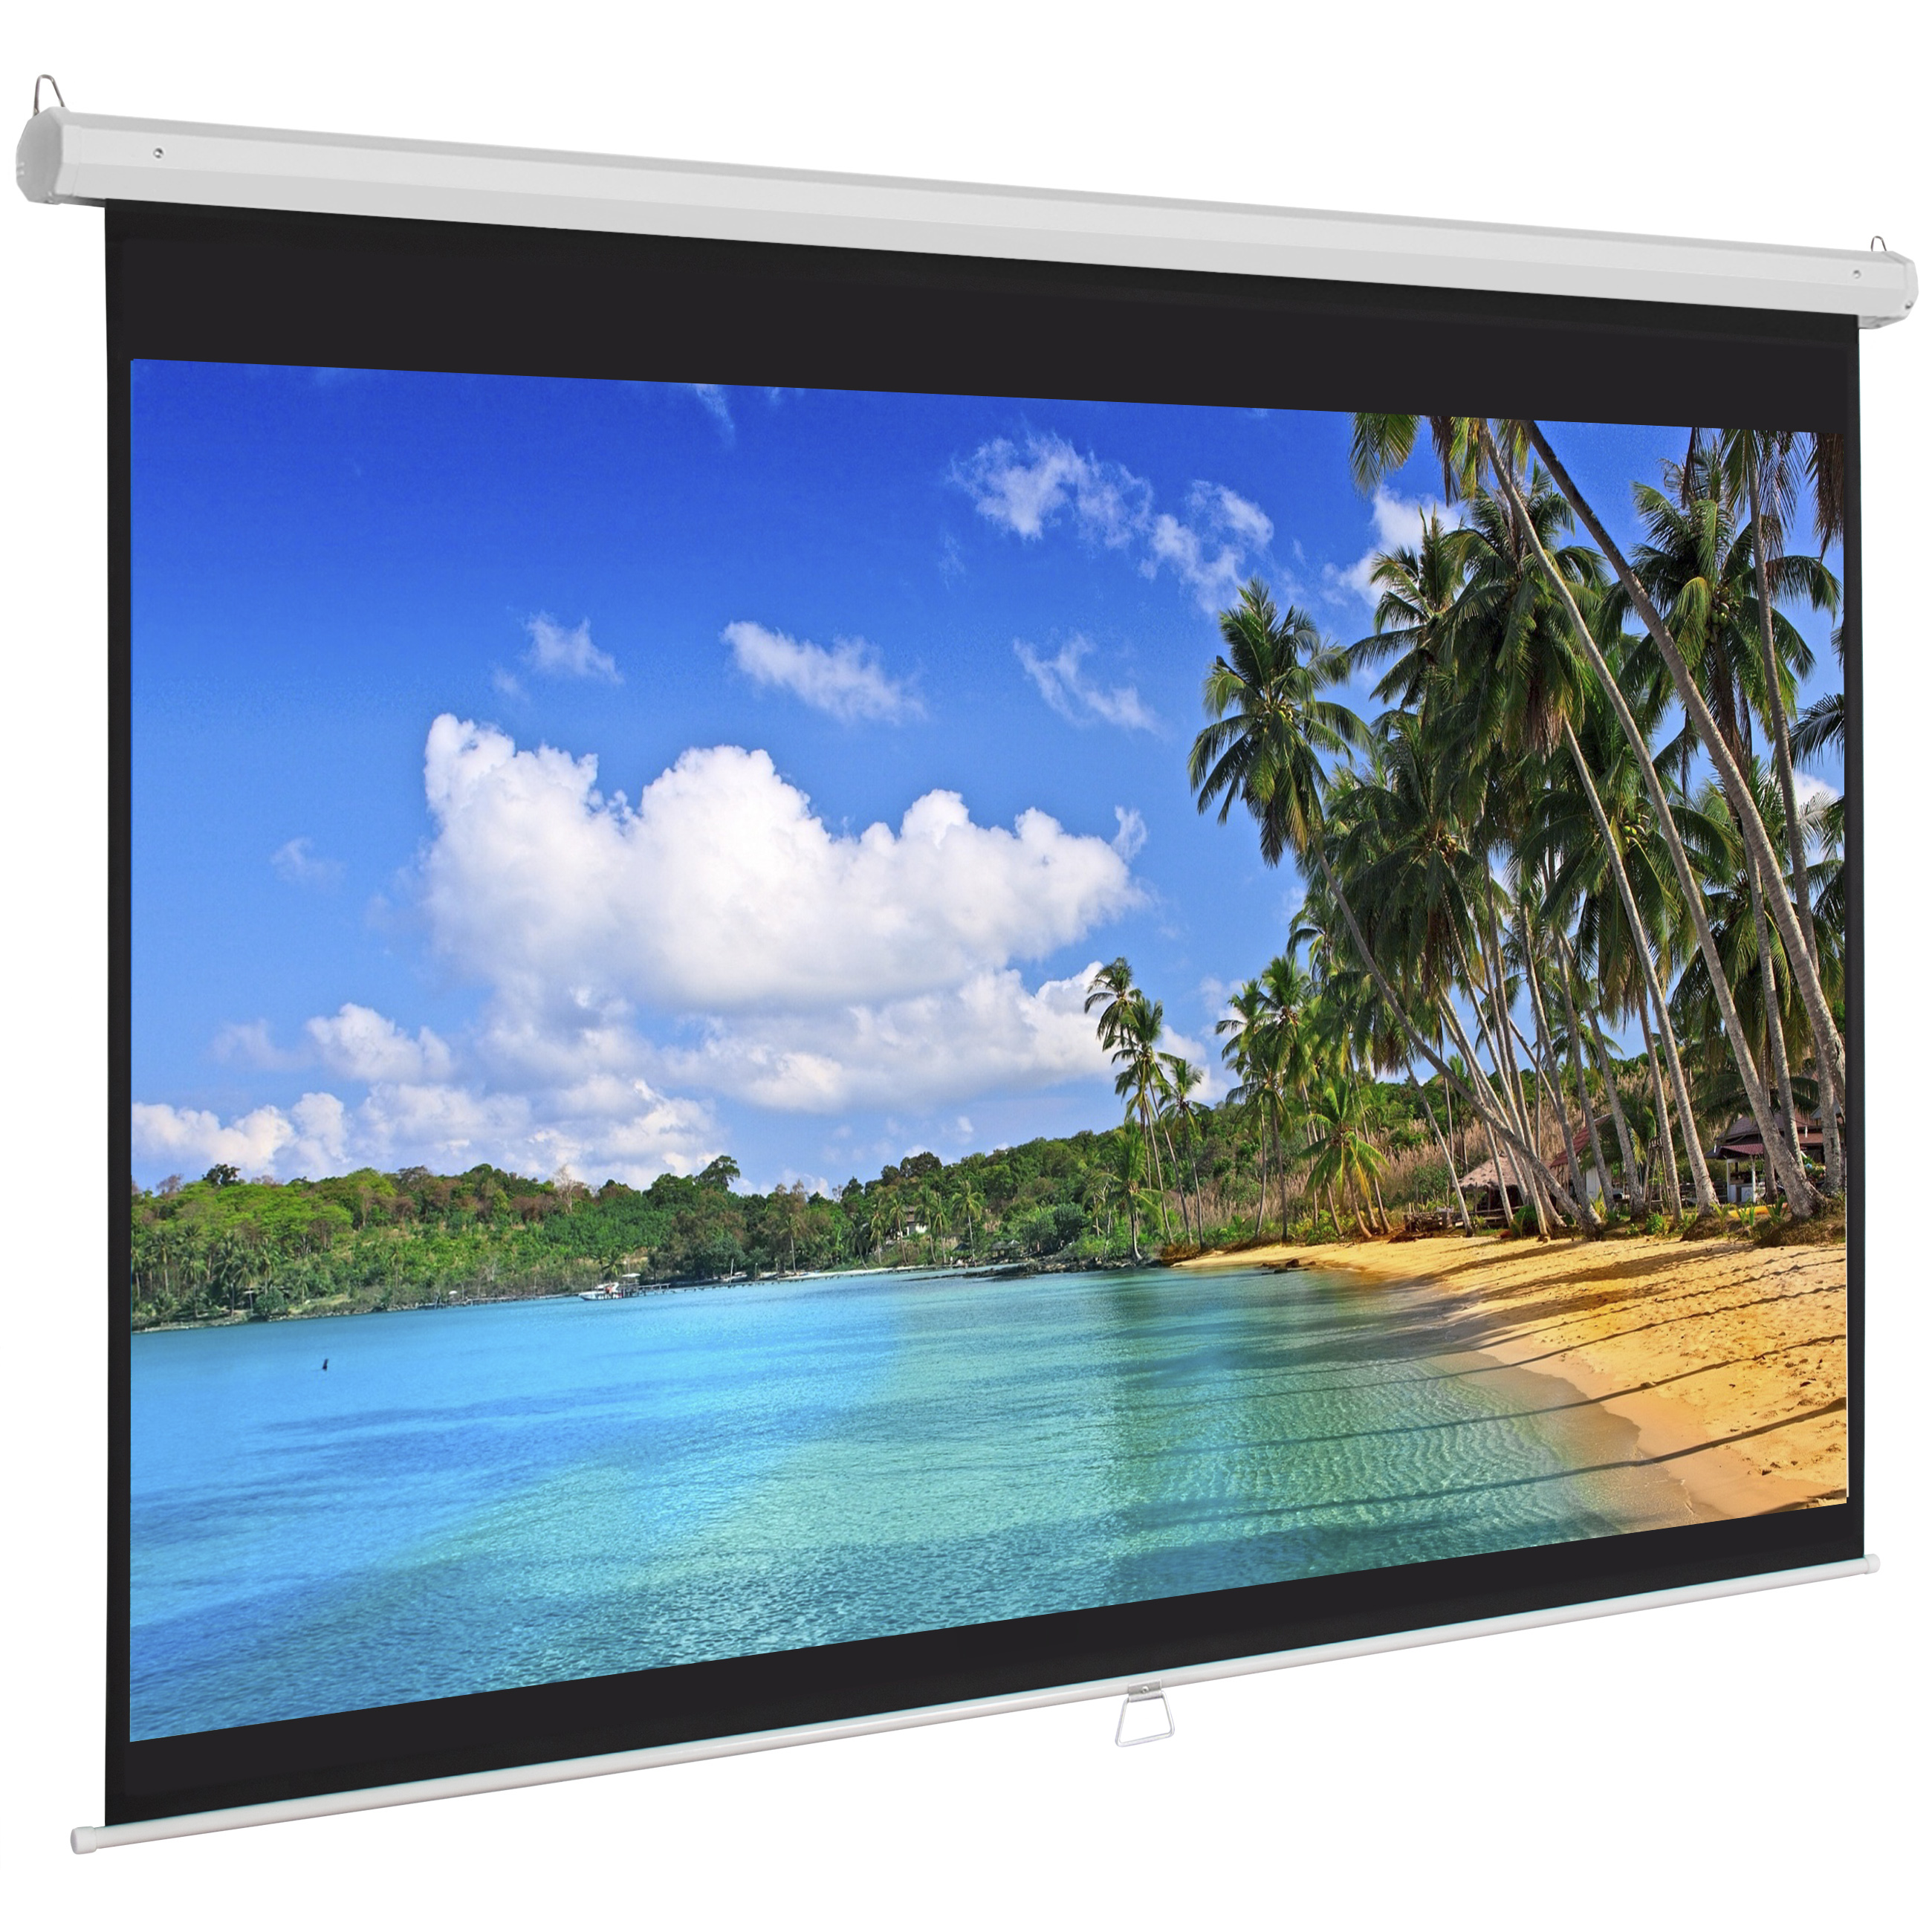 Click here to buy Best Choice Products 119in HD Indoor Pull Down Manual Projector Screen for Home Theater, Office, Entertainment... by Best Choice Products.